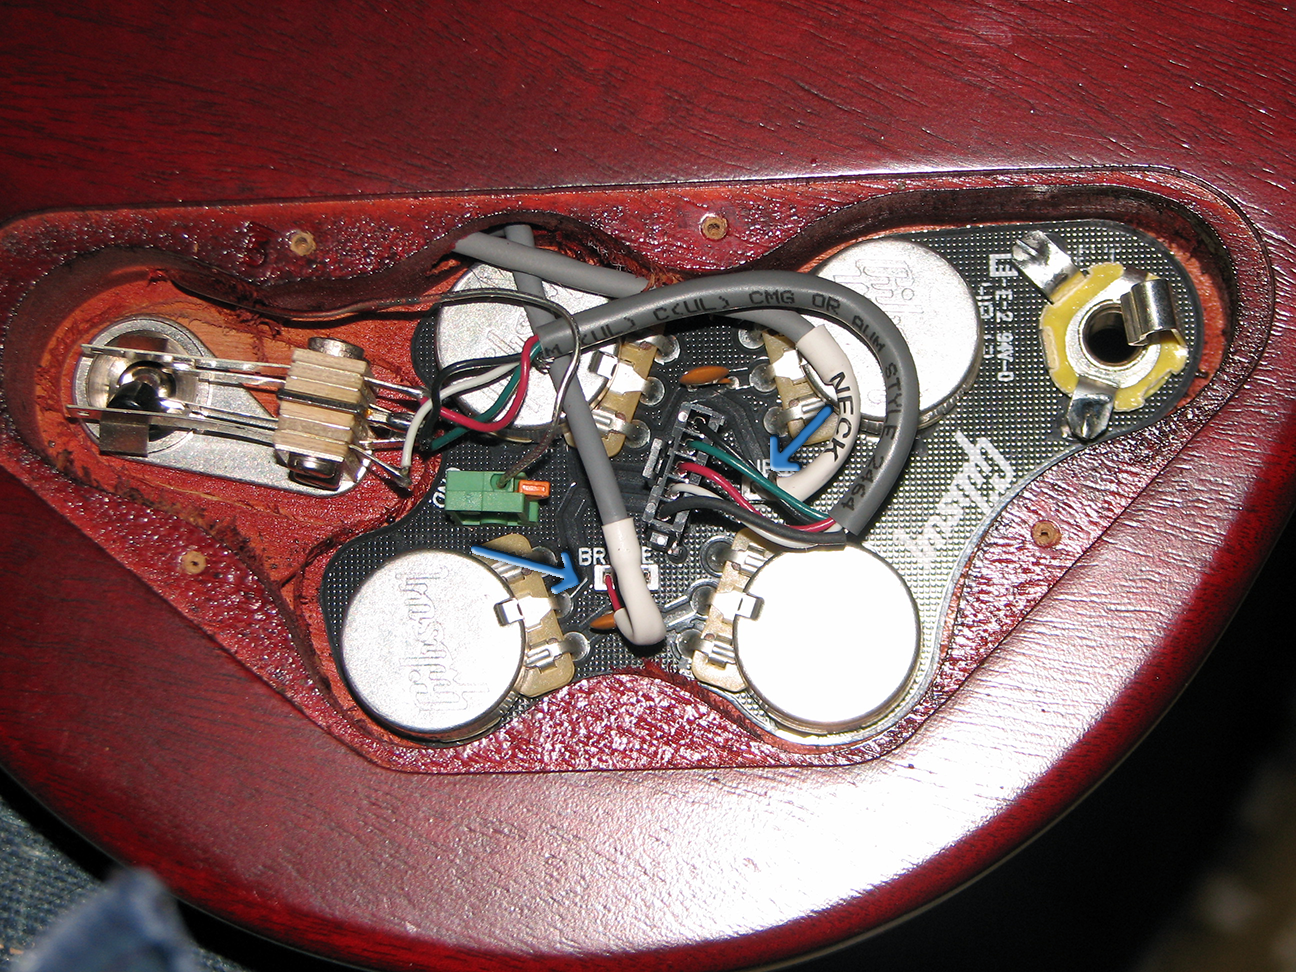 Gibson Sg Wiring Quick Connect Bookmark About Diagram Standard All Connects Not Created Equal Everythingsg Com Rh Tractor Ignition